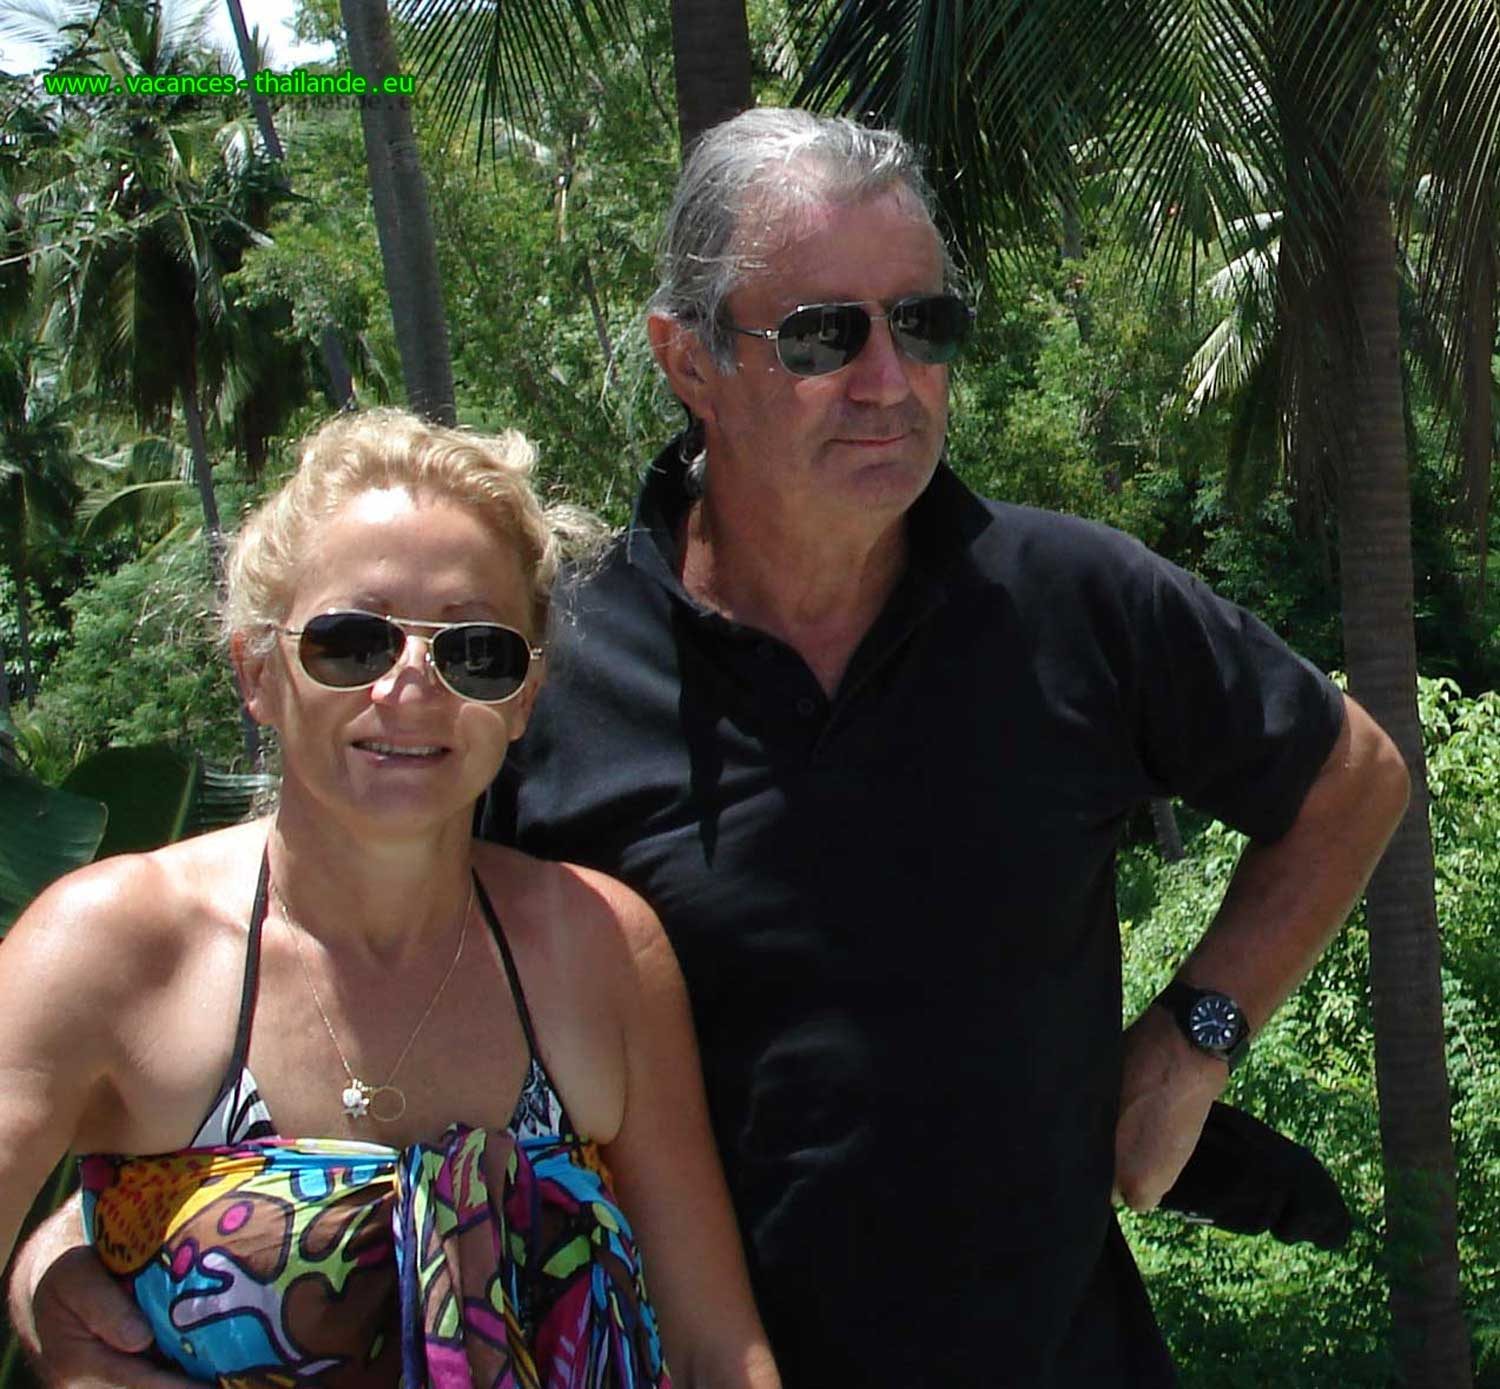 english photo 51, Paris pool villa rental by Marie and Patrick welcome you to Koh Samui Island